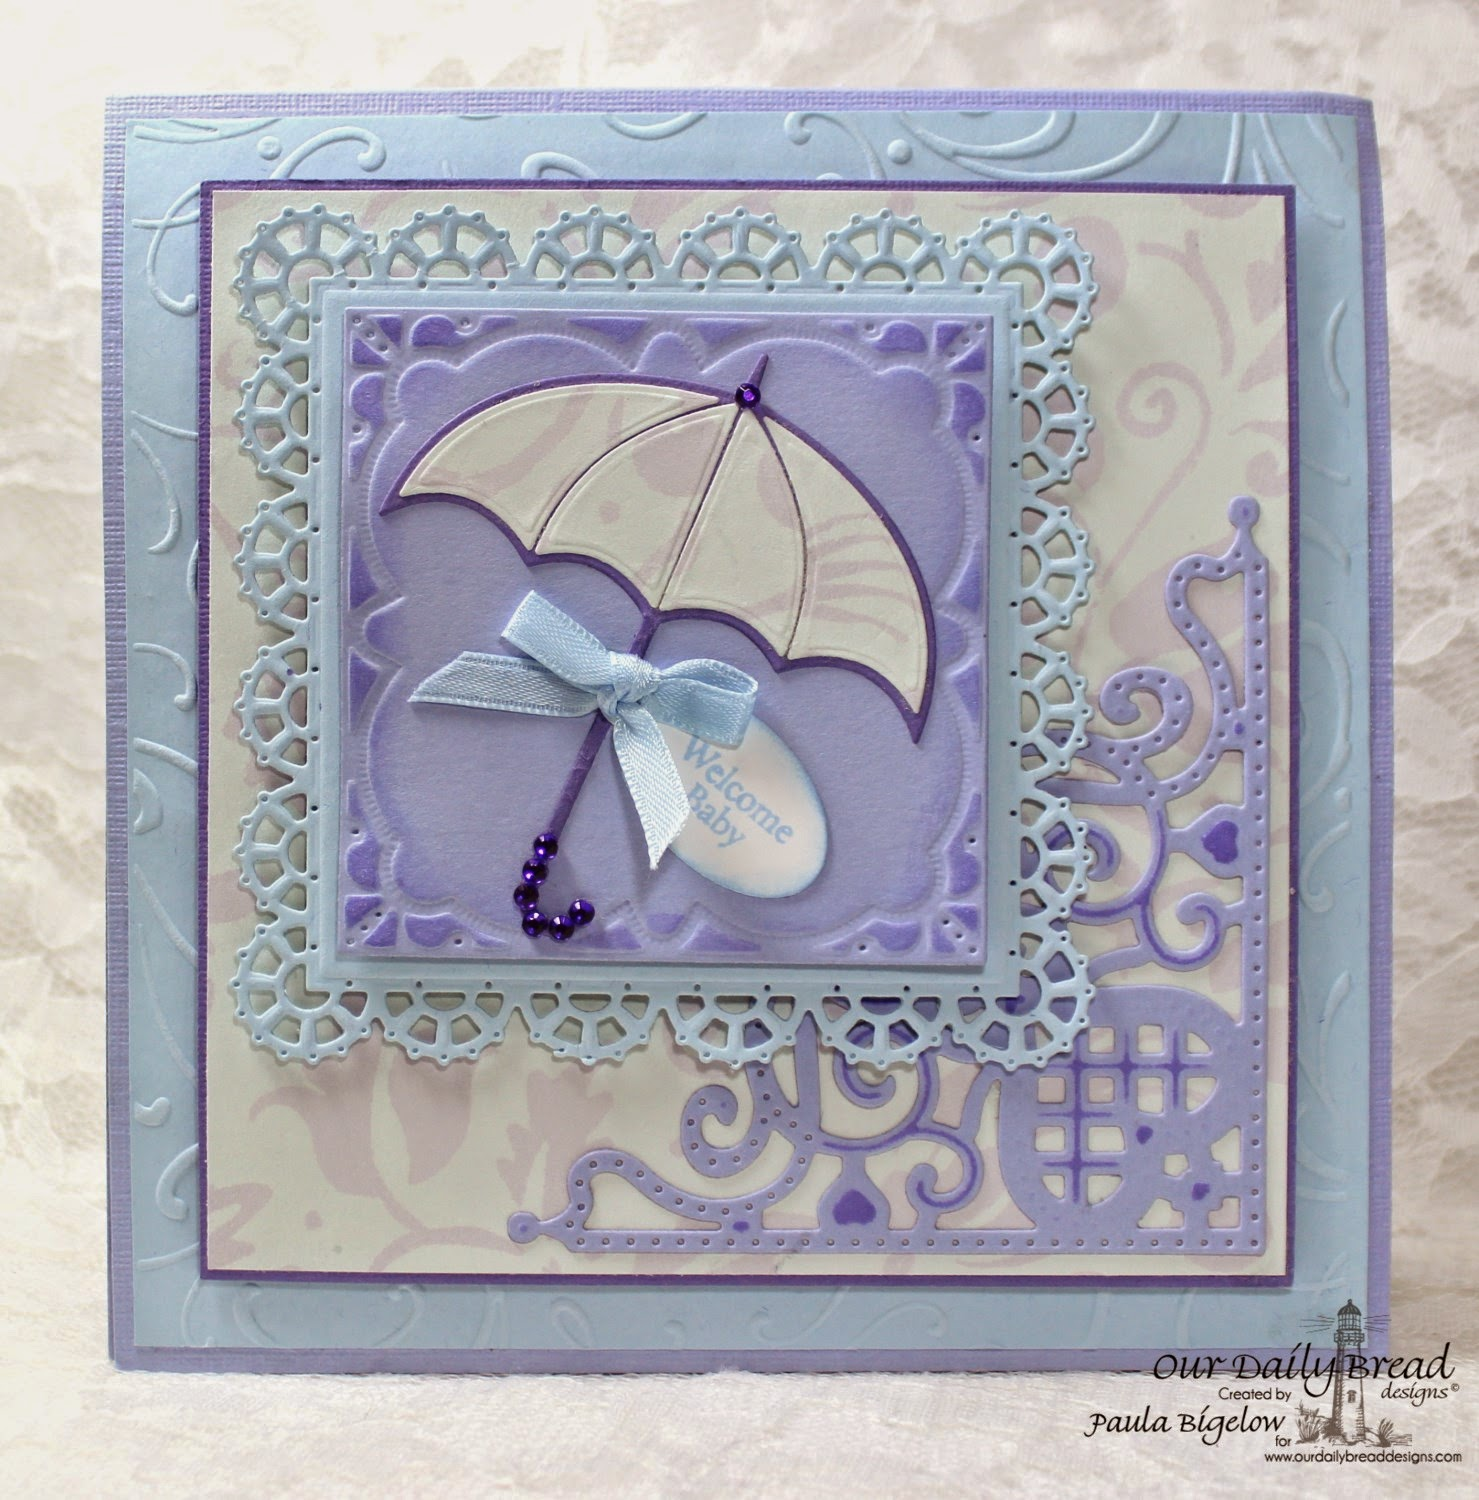 Our Daily Bread Designs, Mini Tag Sentiments, April Showers, All Occasion Sentiments, ODBD Umbrellas Dies, ODBD Layered Lacey Squares Dies, ODBD Mini Tags Dies, ODBD Decorative Corners Dies, ODBD Clouds & Raindrops Dies, Designed by Paula Bigelow